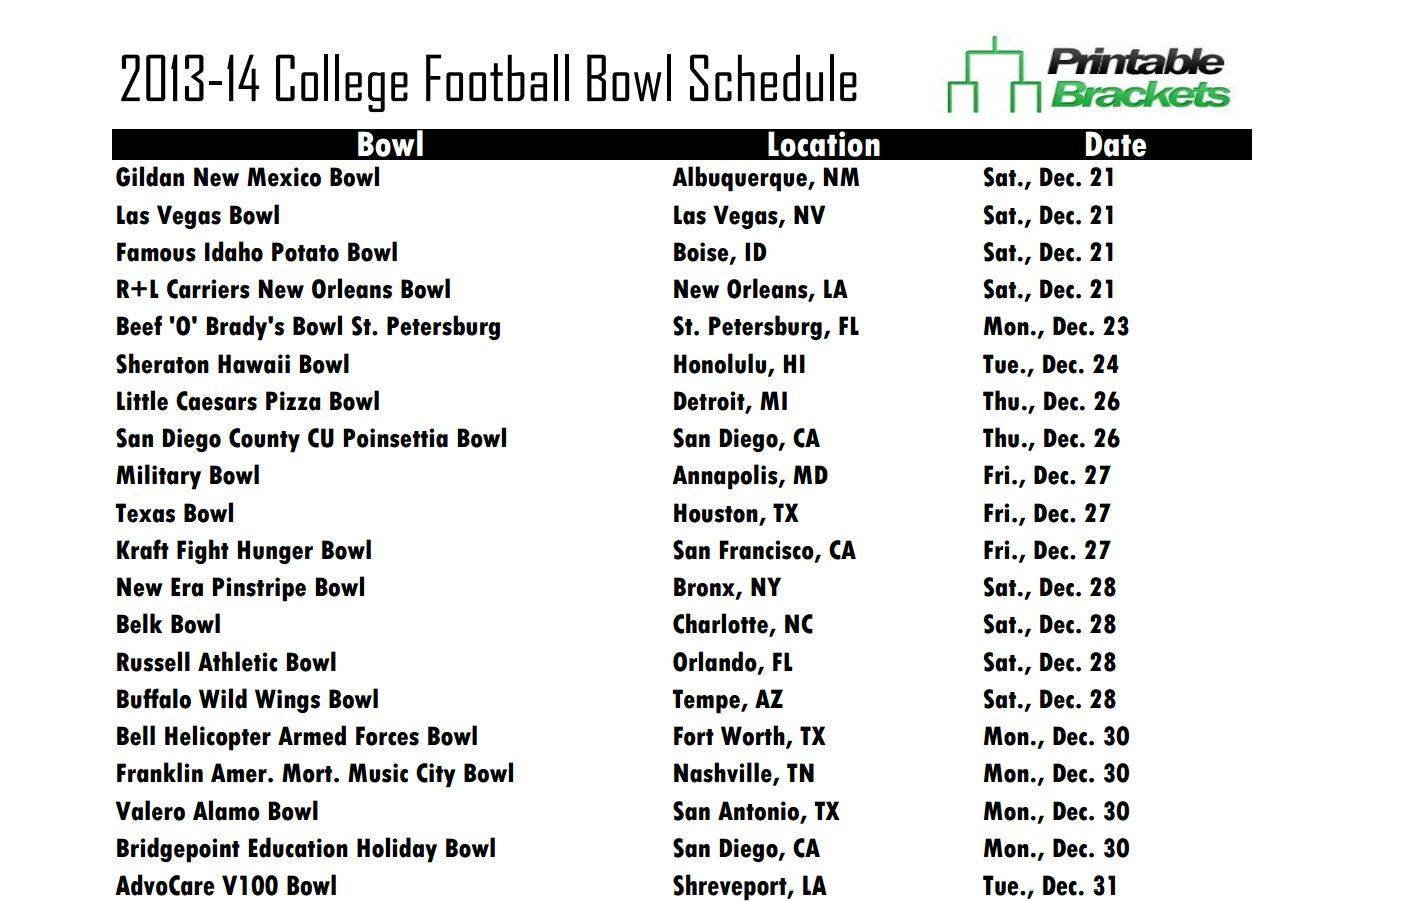 ... Football Bowl Schedule | 2013 Bowl Schedule » Printable Brackets